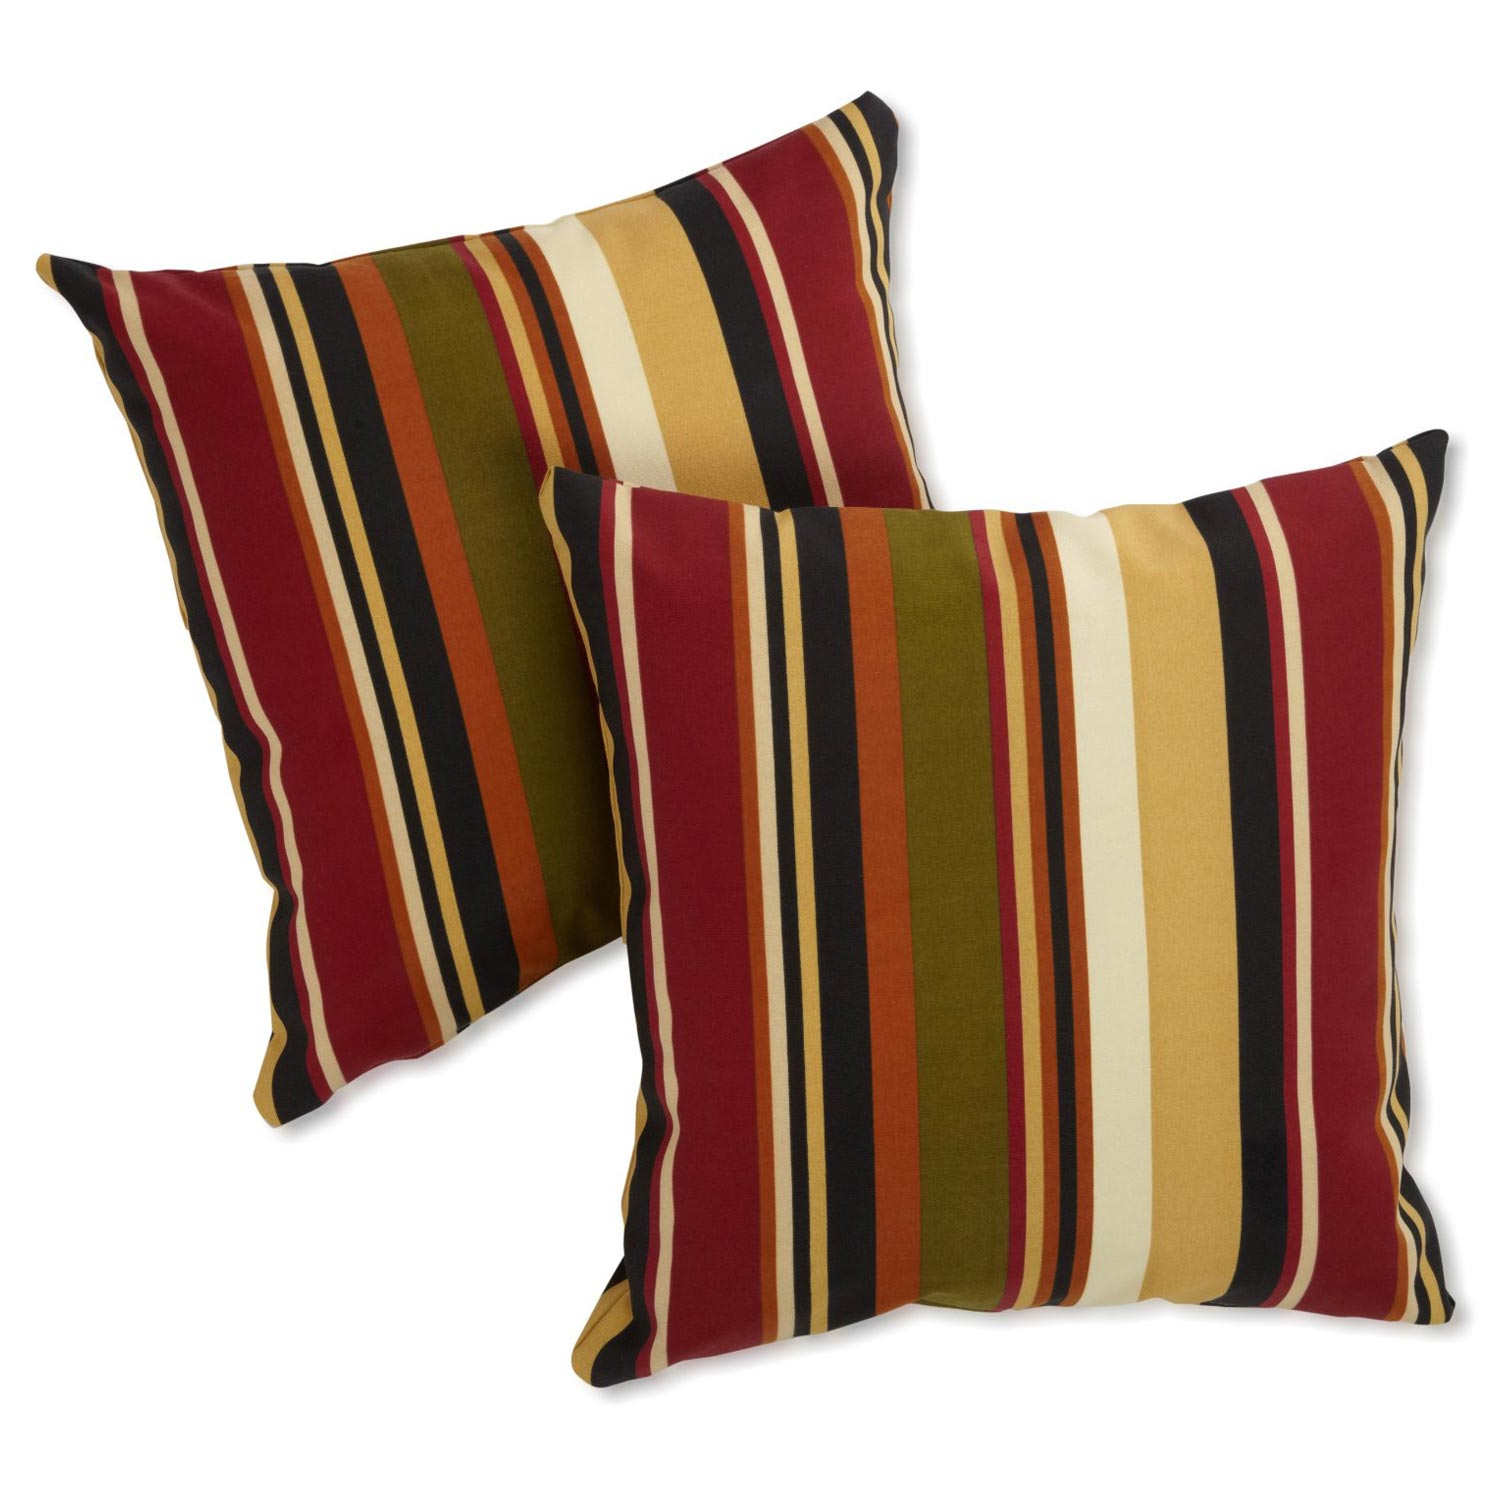 "25"" Outdoor Jumbo Throw Pillows - Patterned Fabric (Set of 2) - BLZ-9940-S-2-REO"